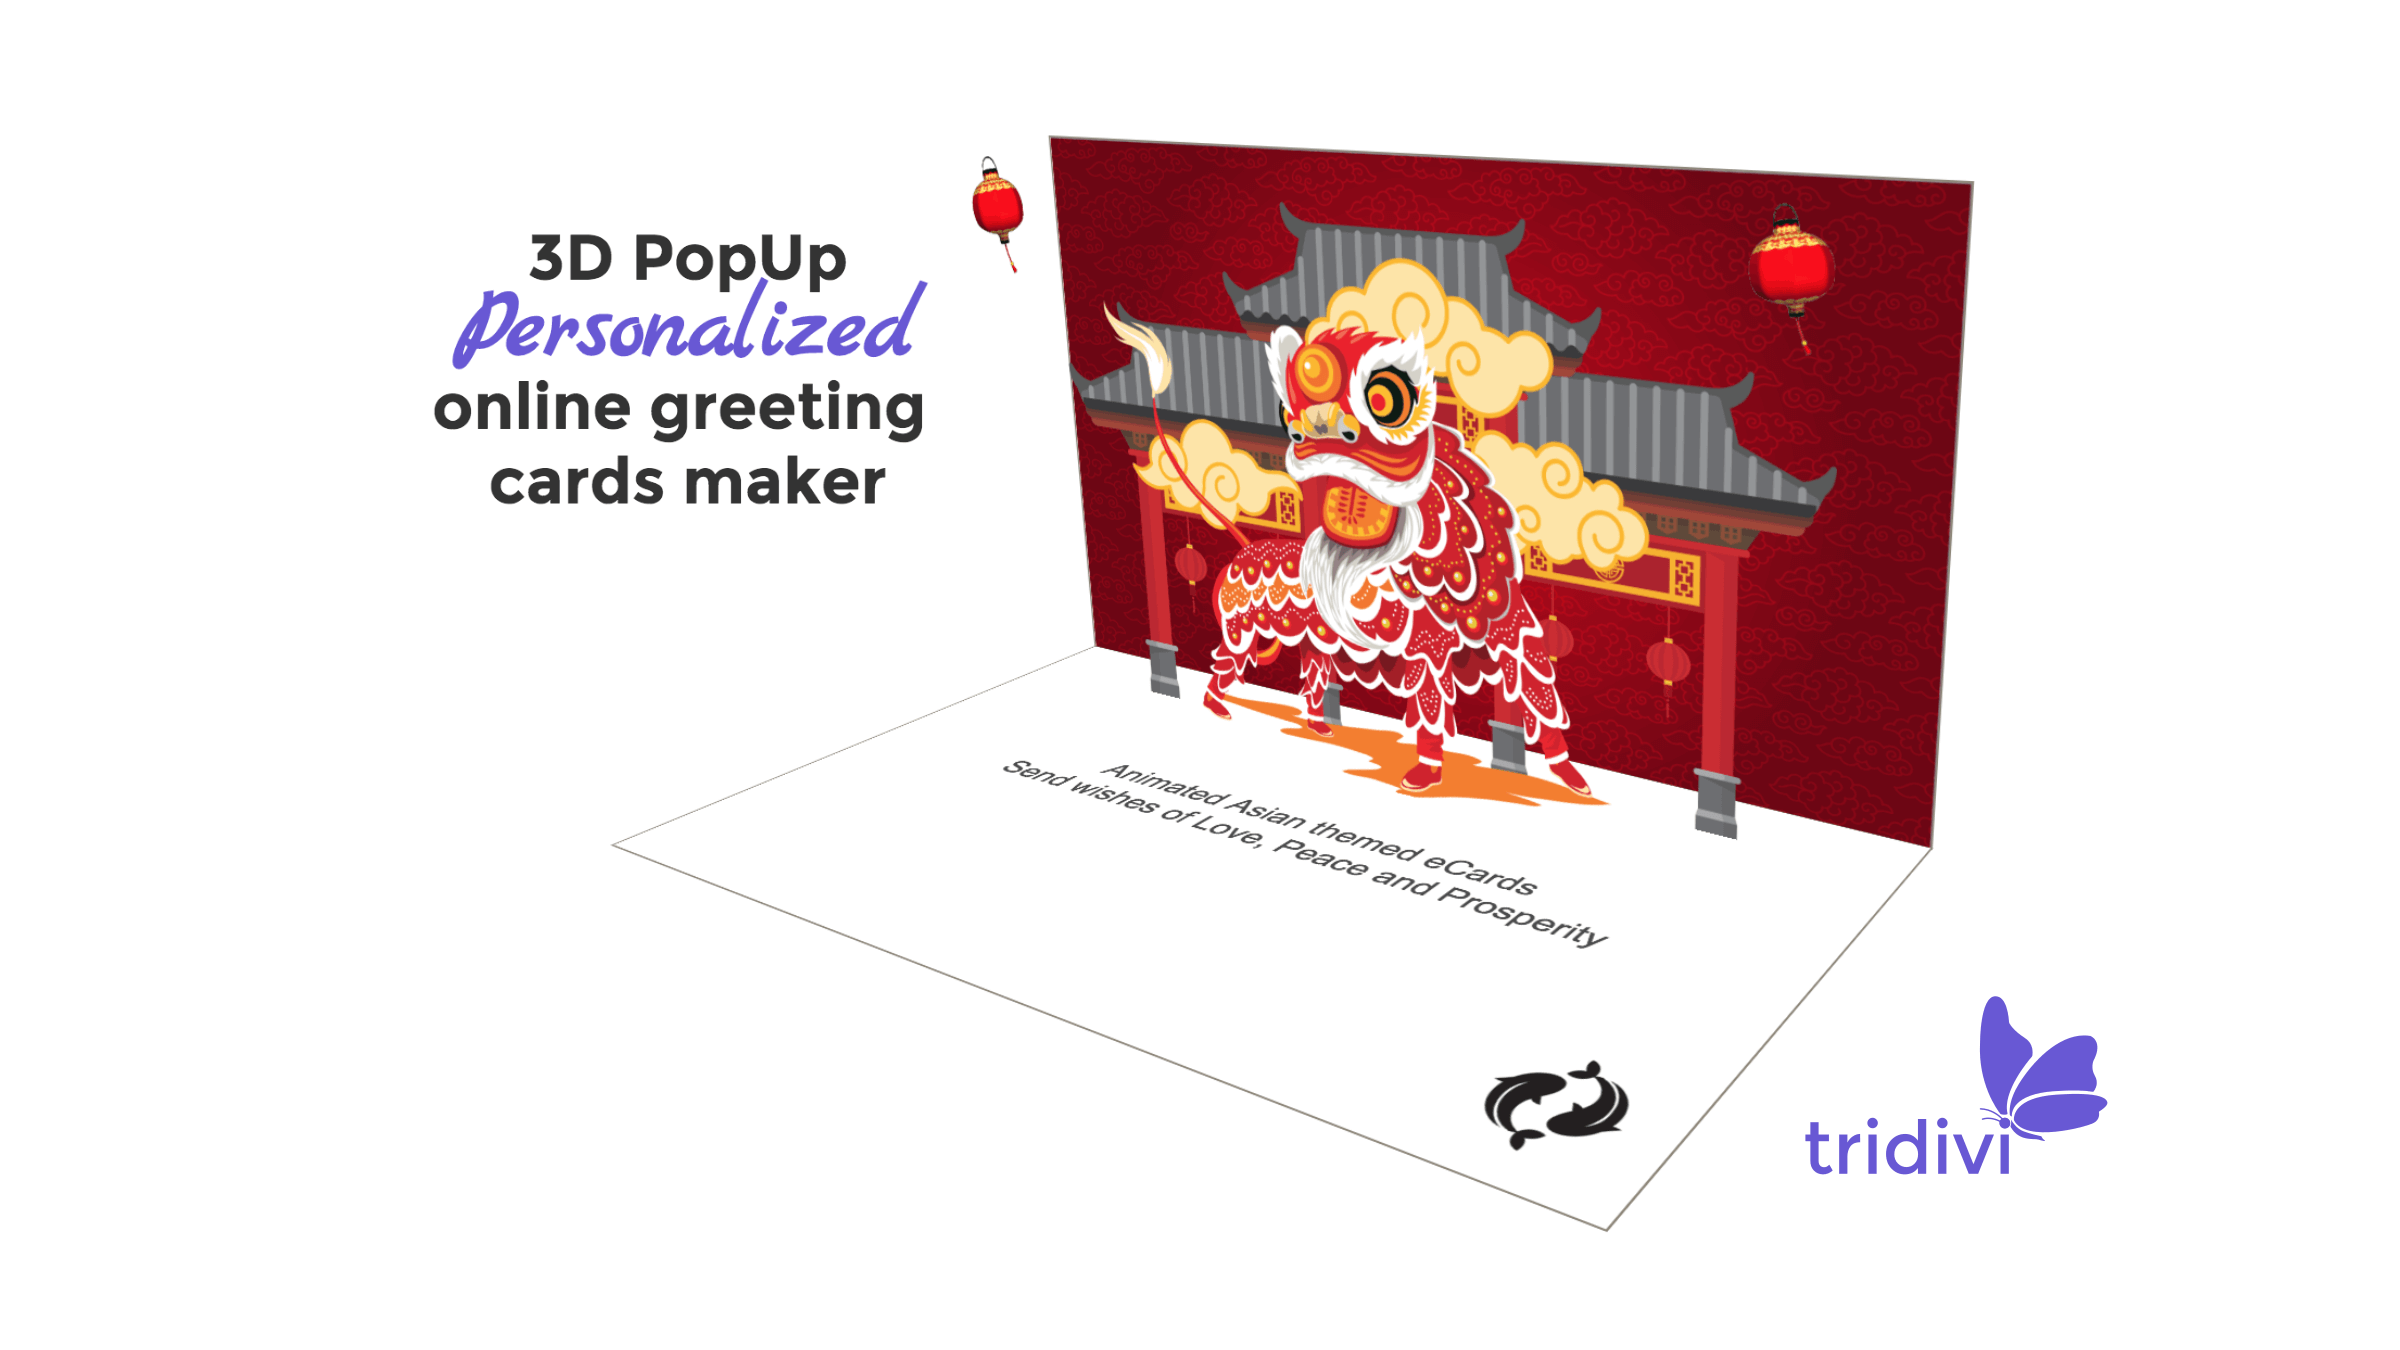 3D Pop Up Asian greeting cards and ecards